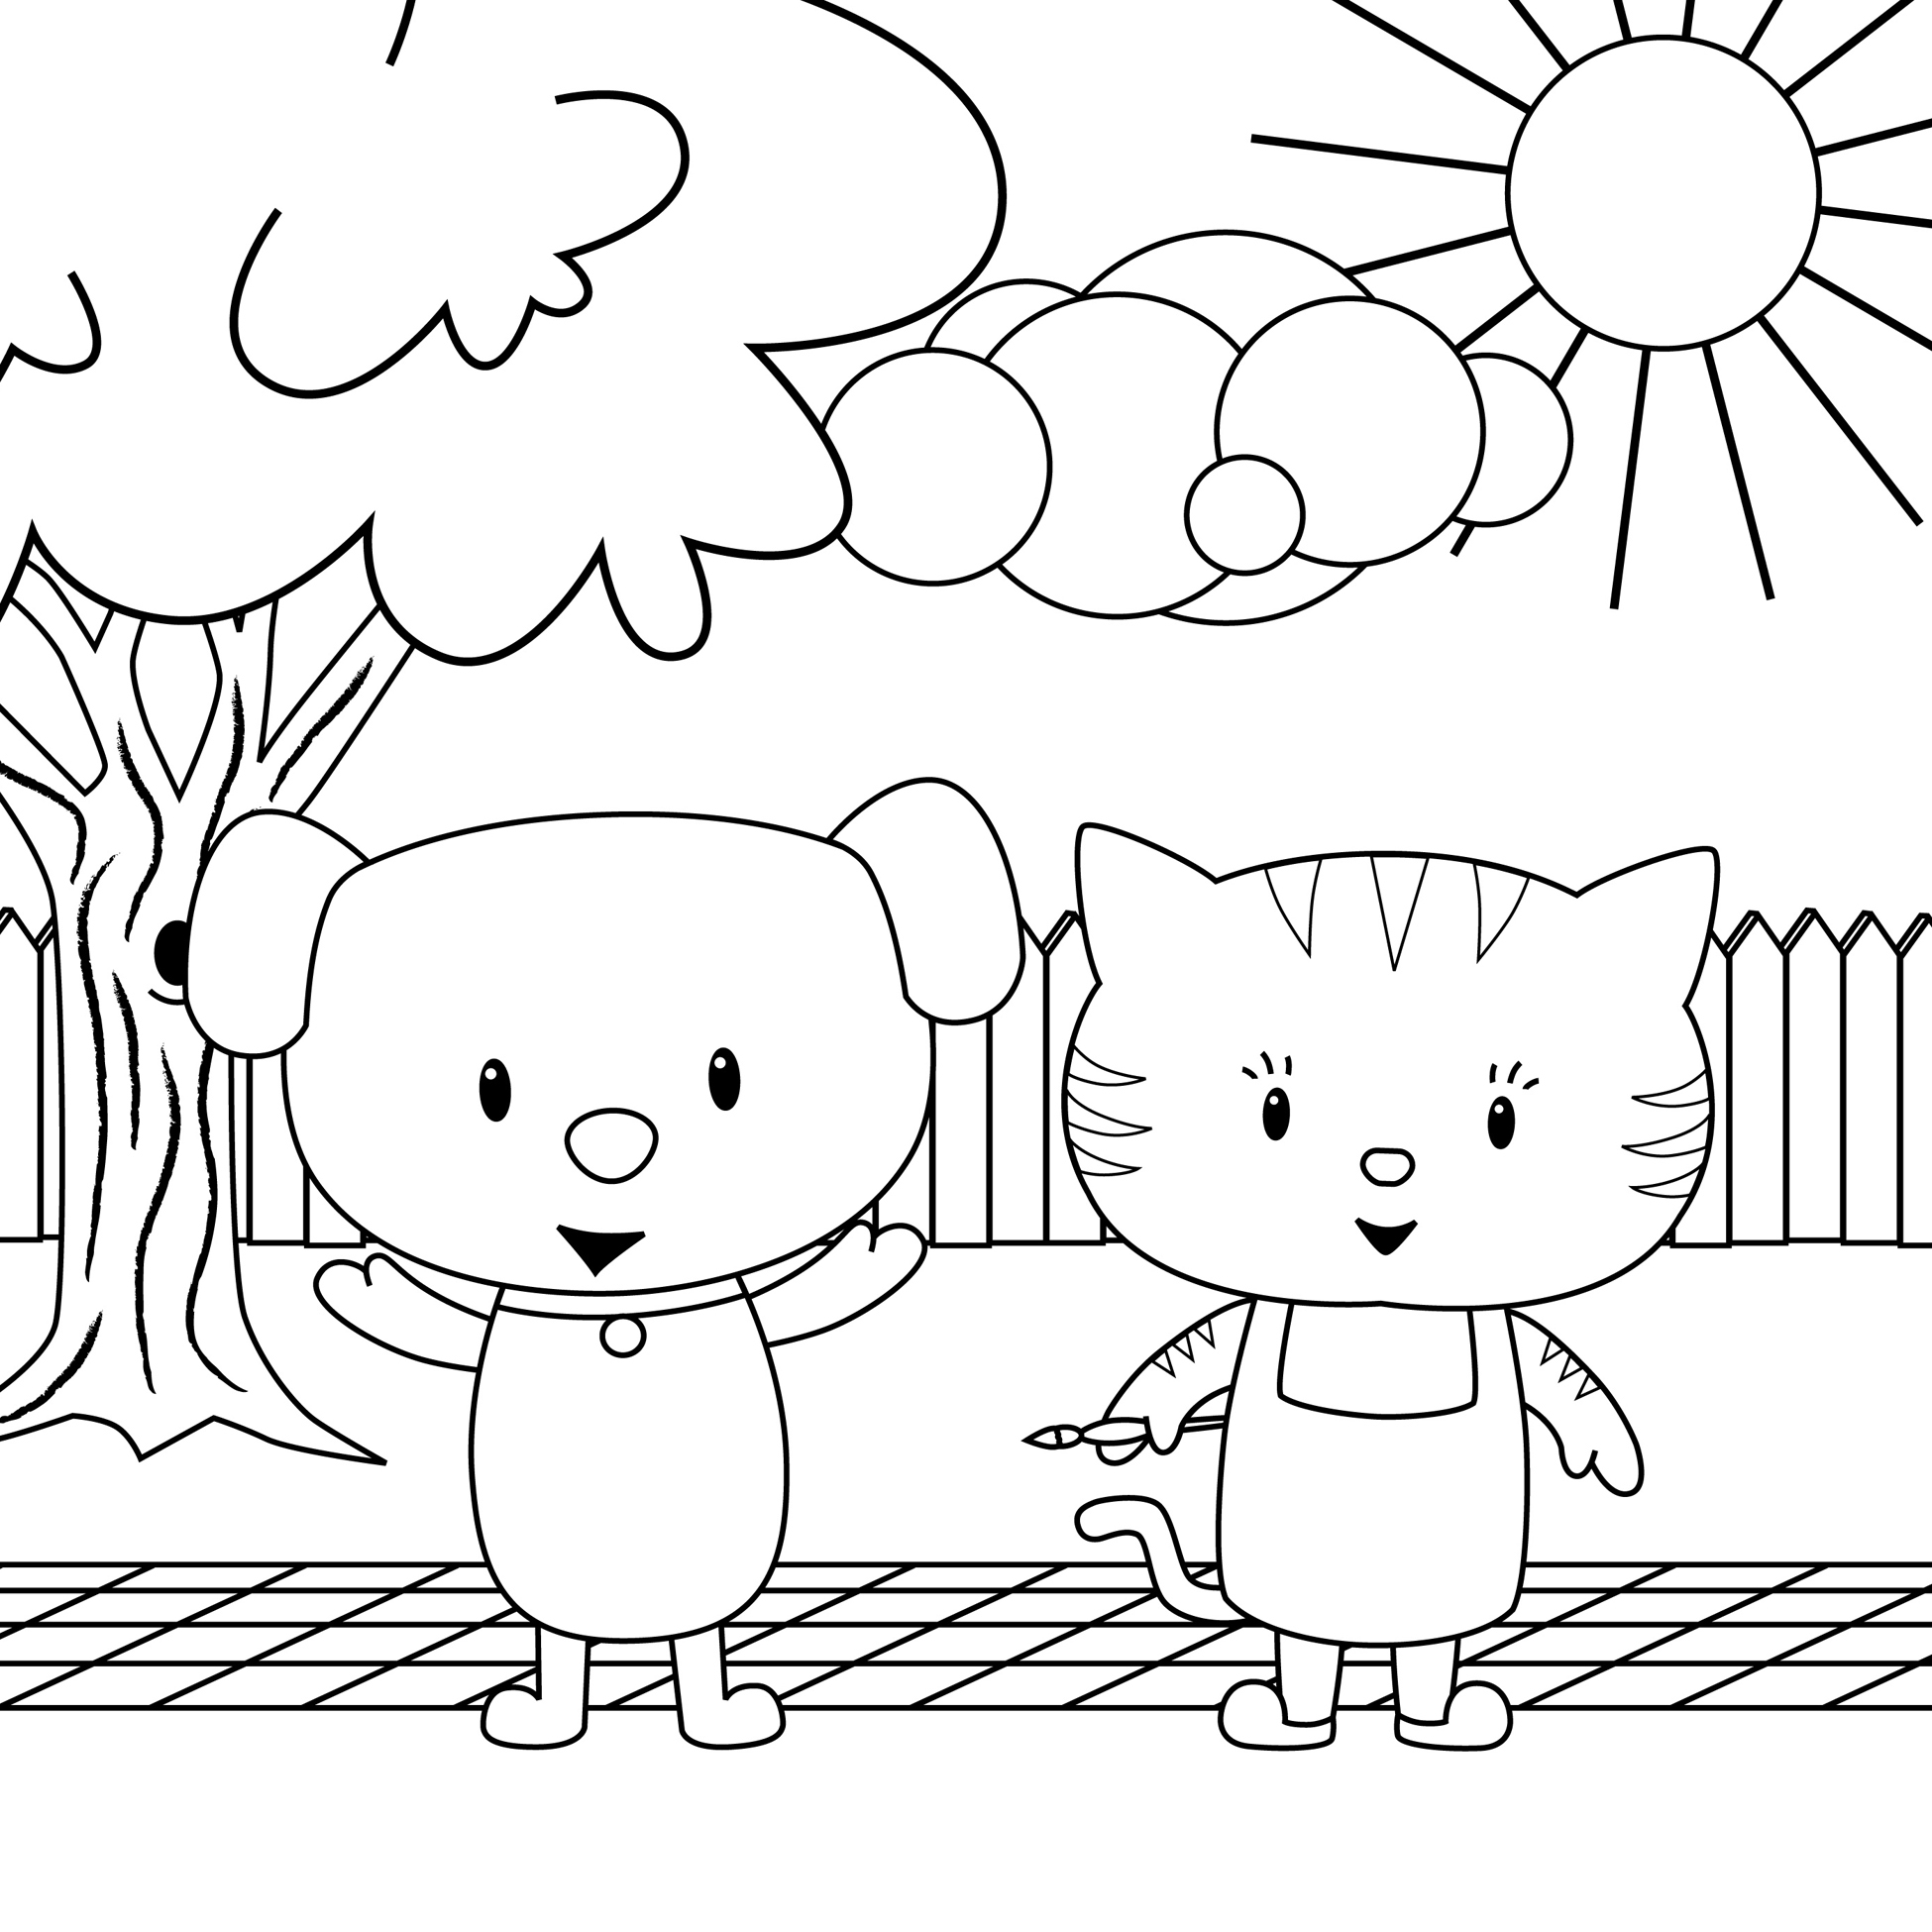 Colouring Pictures Cats Dogs : Lake Calm Winter Frost Trees Pink Coloring Pages With Dogs And Cats